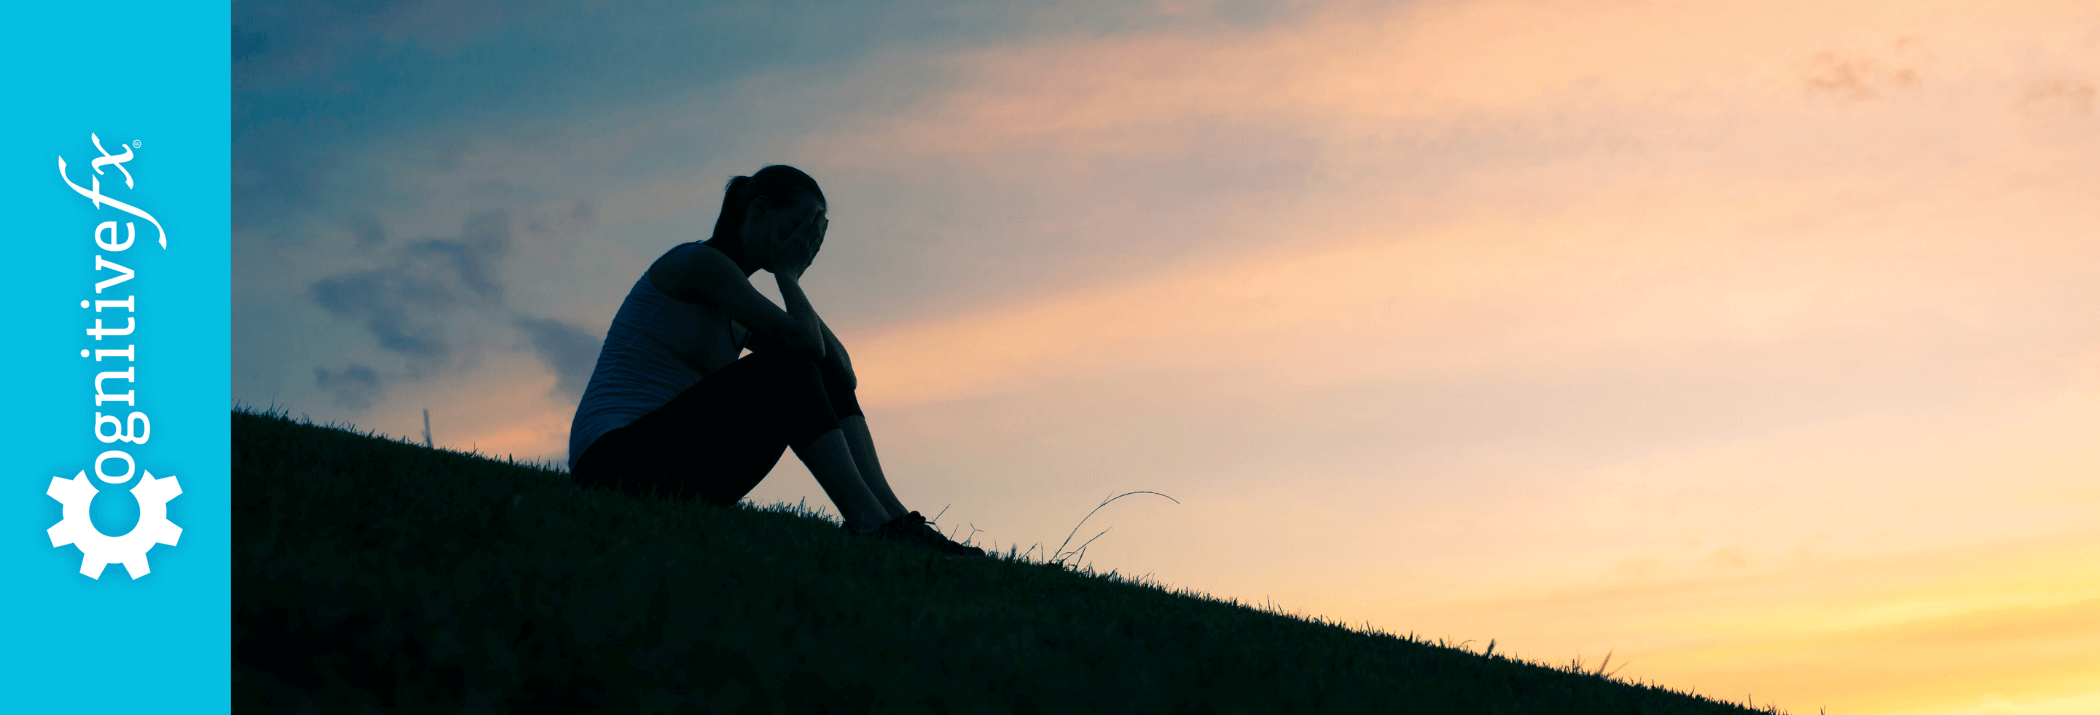 Suicidal Thoughts and Post-Concussion Syndrome: What Can You Do?